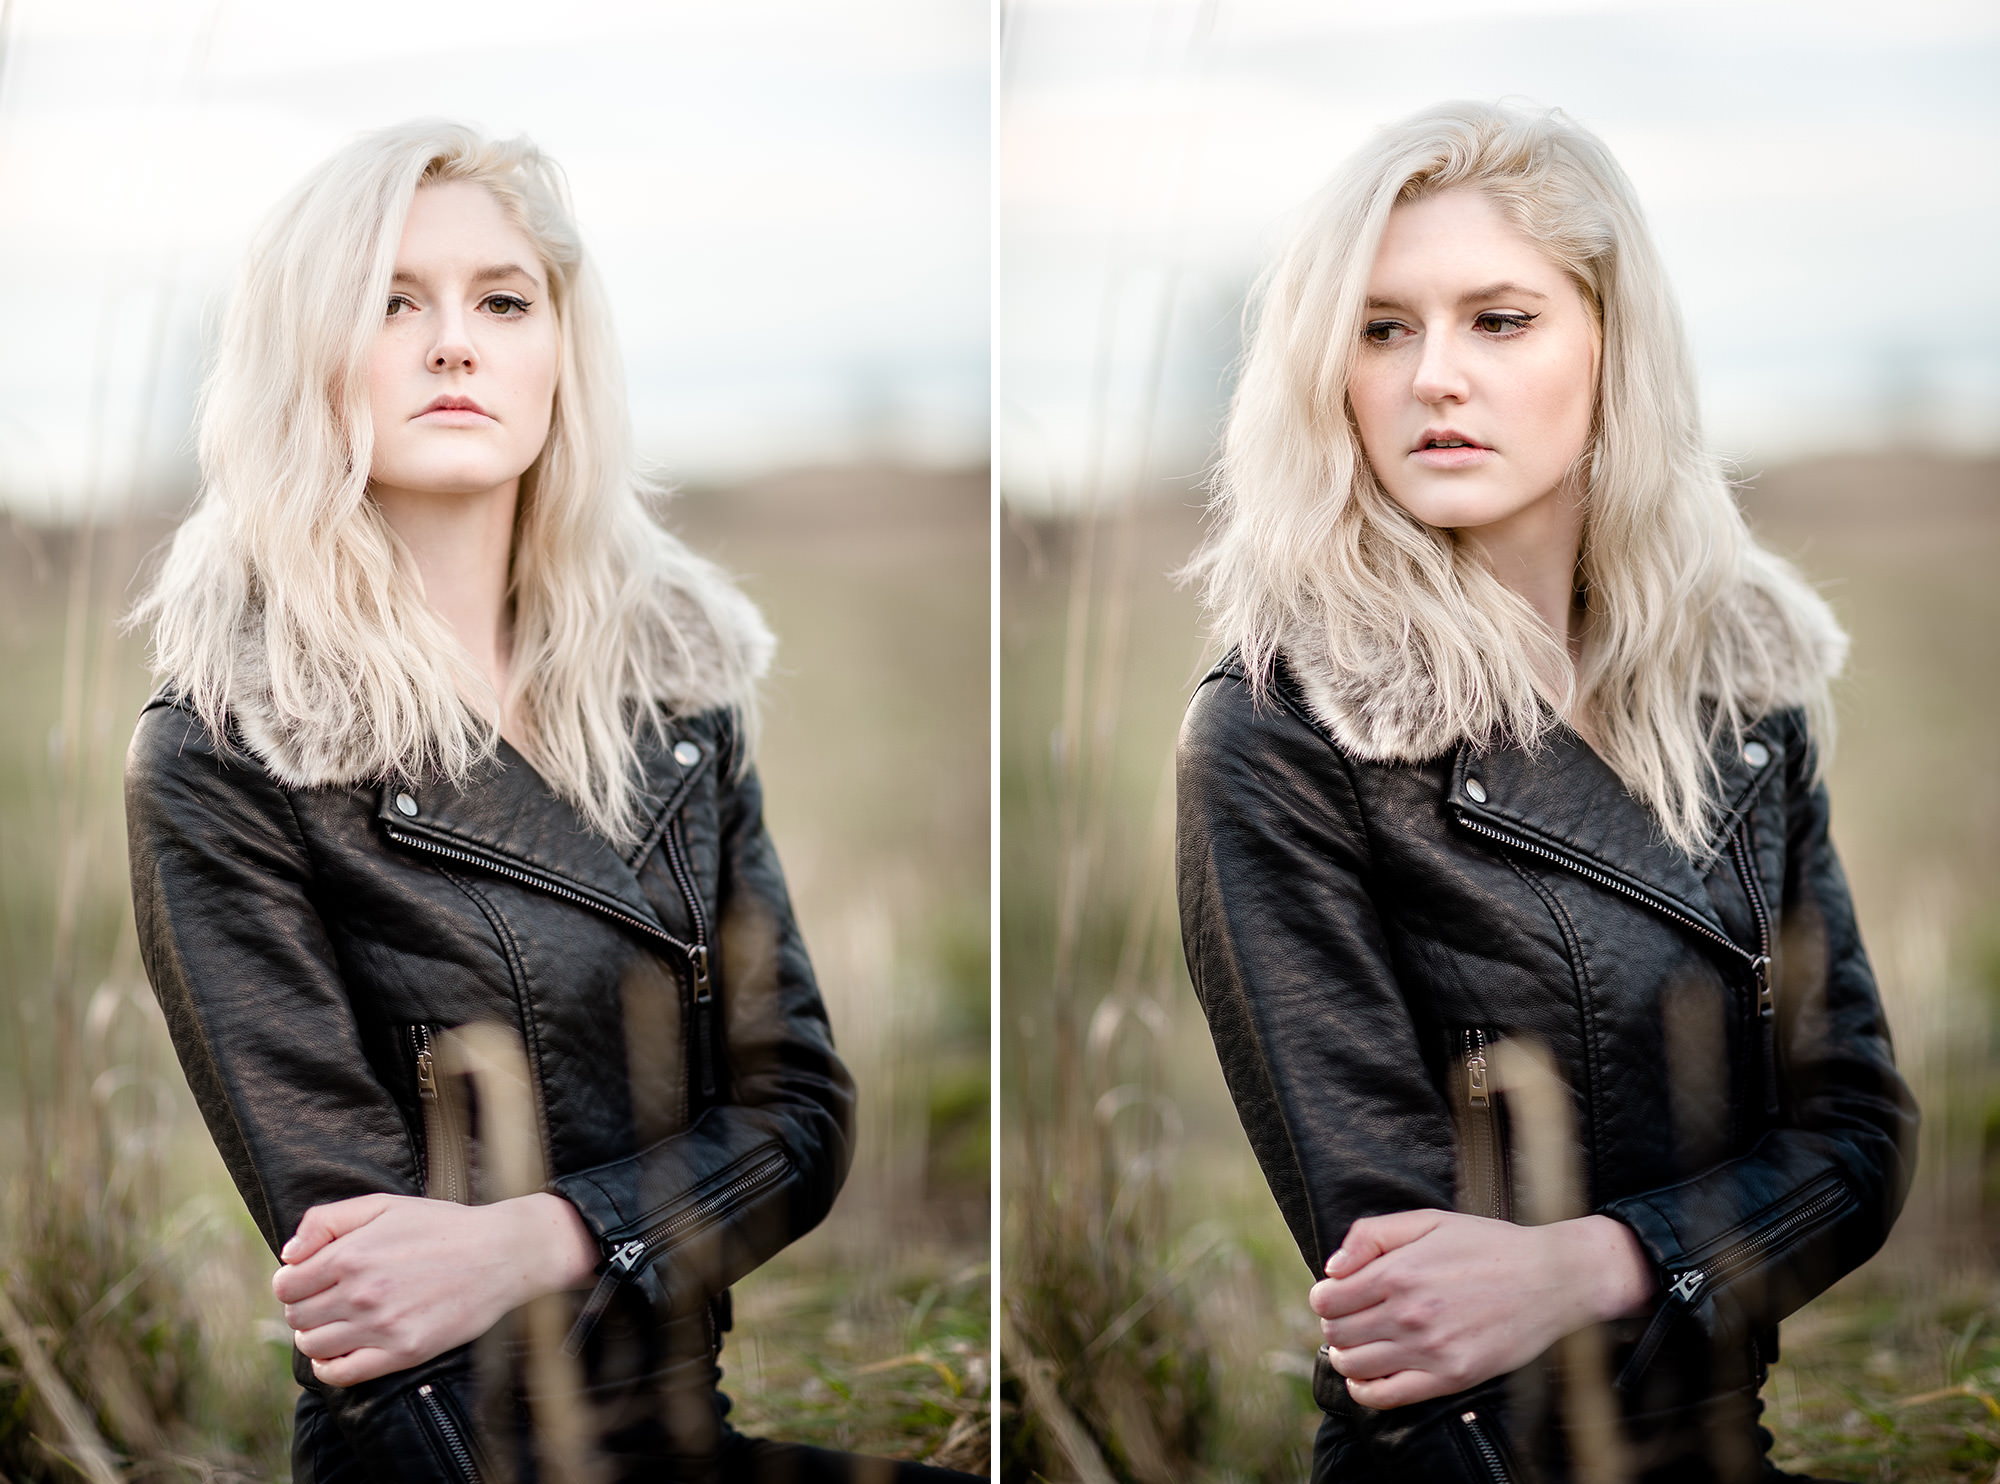 Seattle Fashion model portrait in leather jacket in natural light